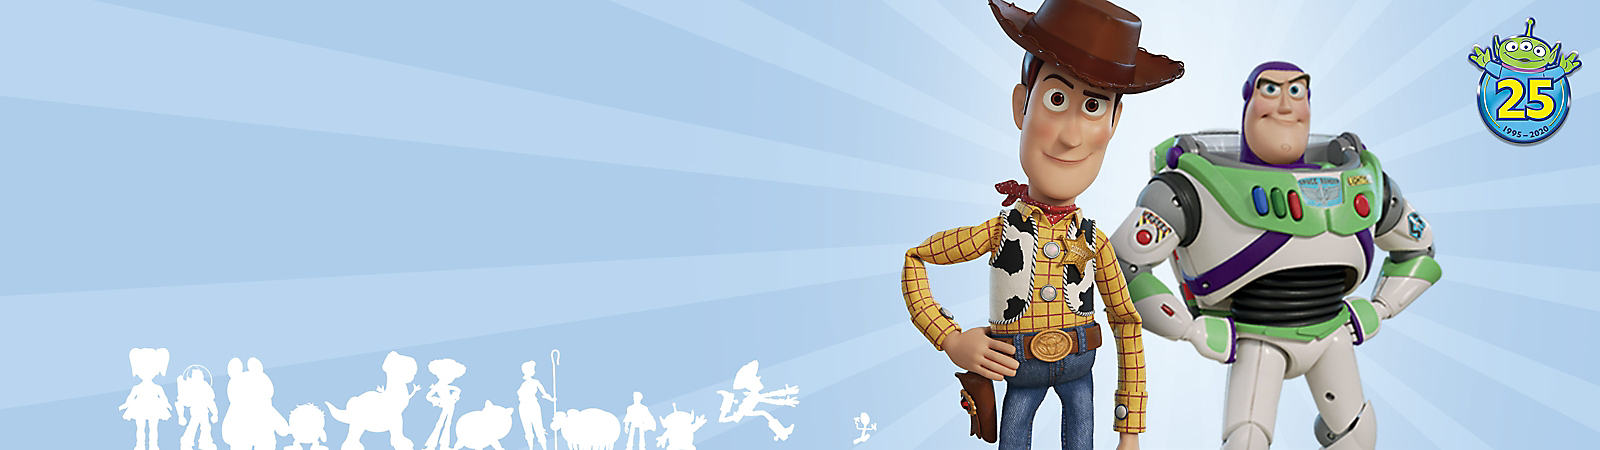 Background image of Toy Story